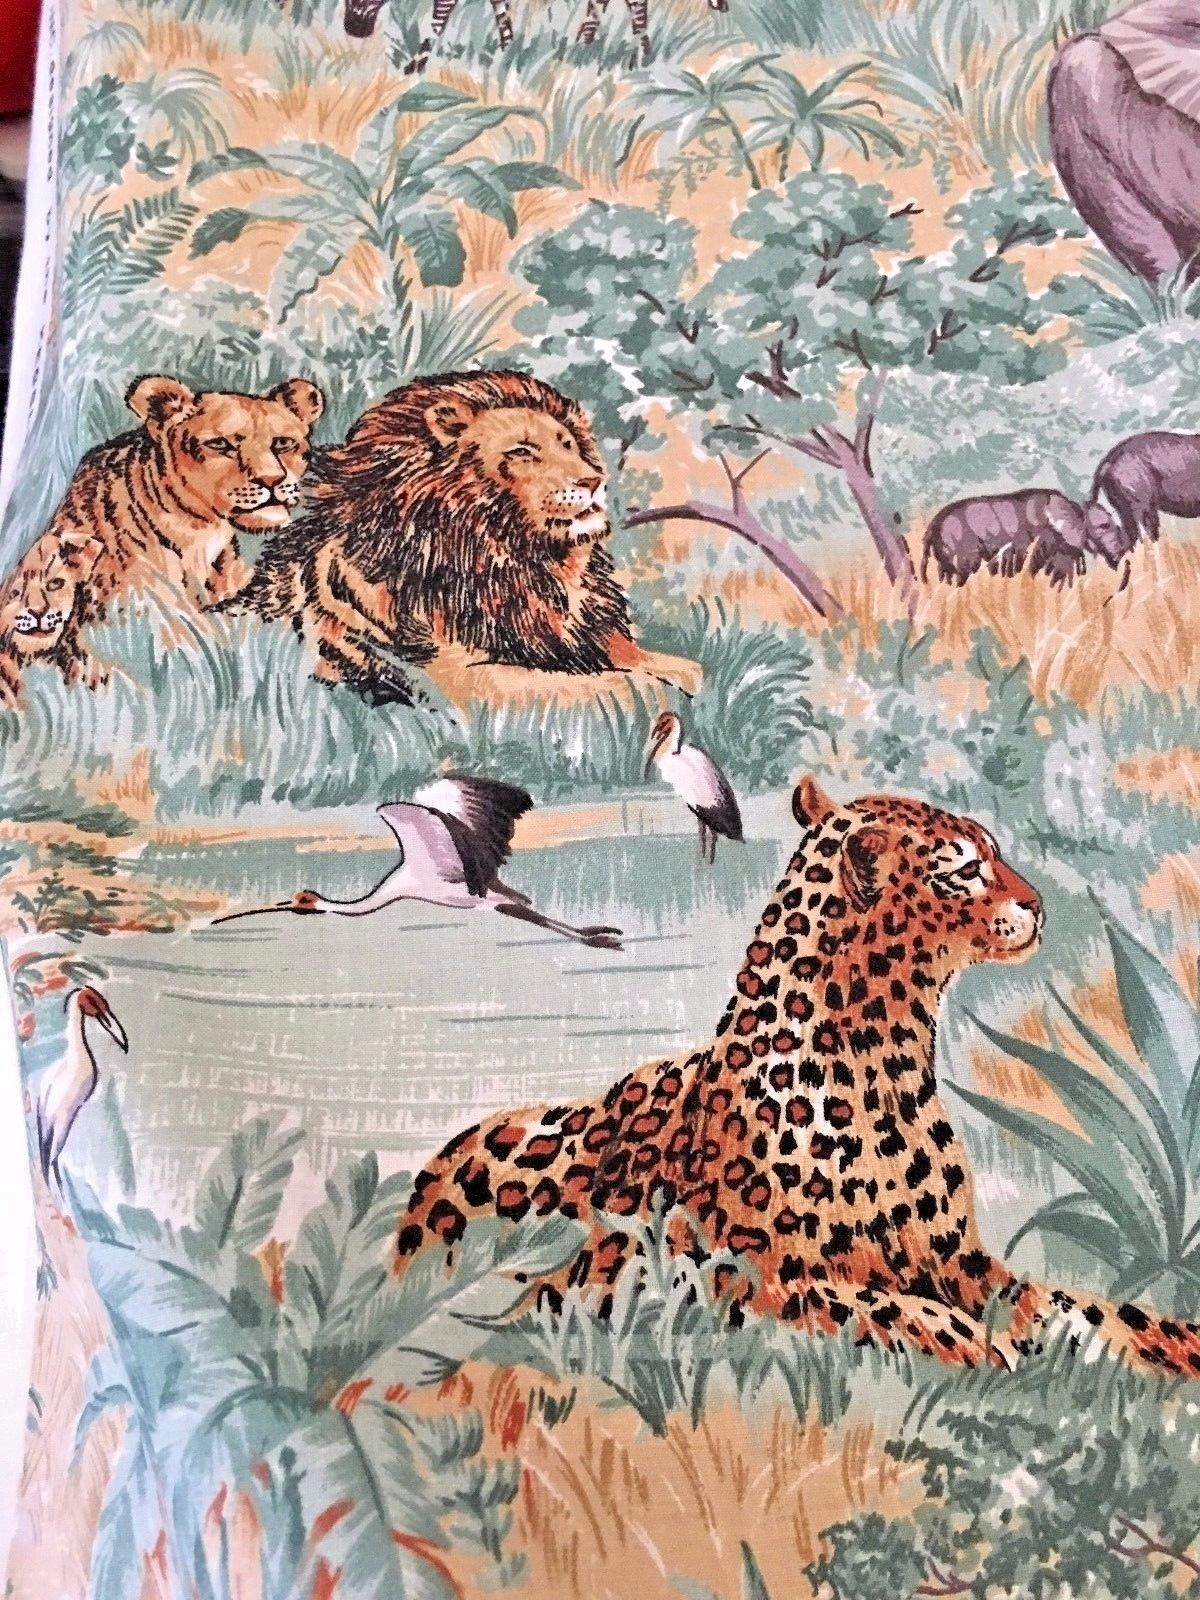 OUT OF AFRICA - ANIMAL PRINT FABRIC BY THE KESSLERS FOR CONCORD FABRICS - 1/2 YD